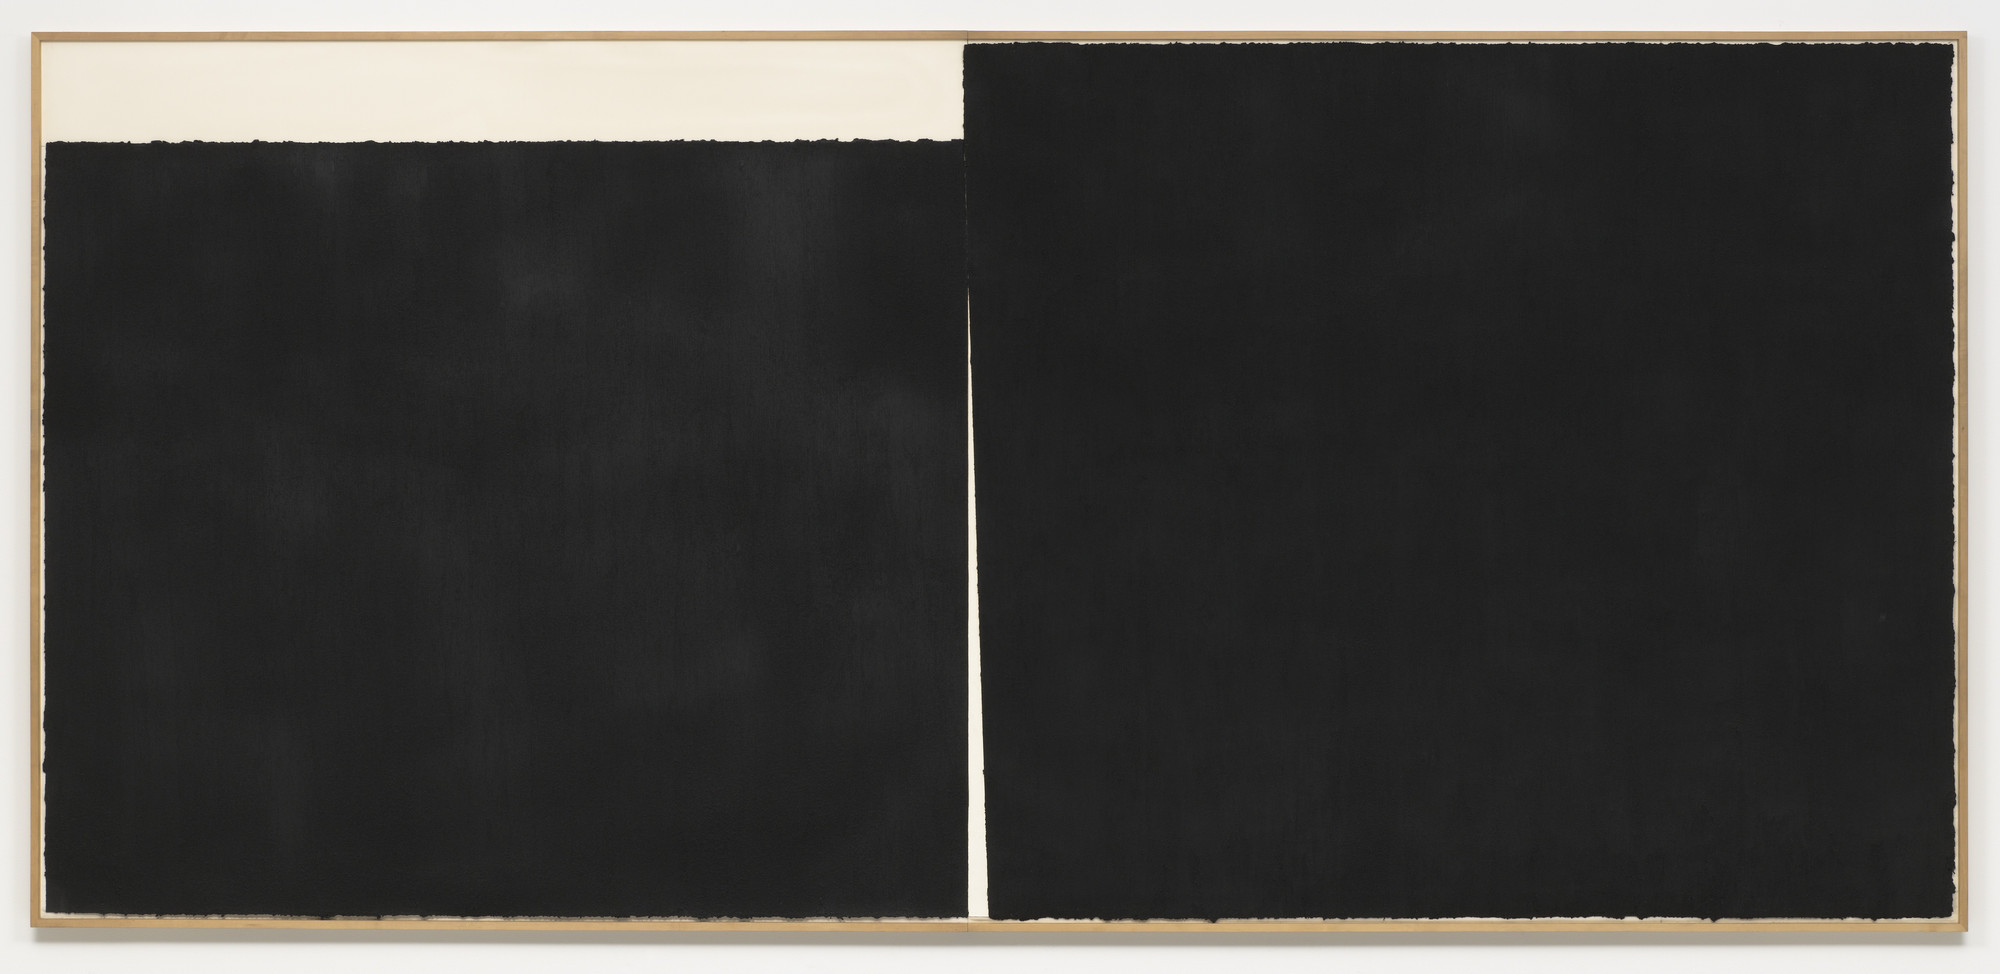 Richard Serra. No Mandatory Patriotism. 1989